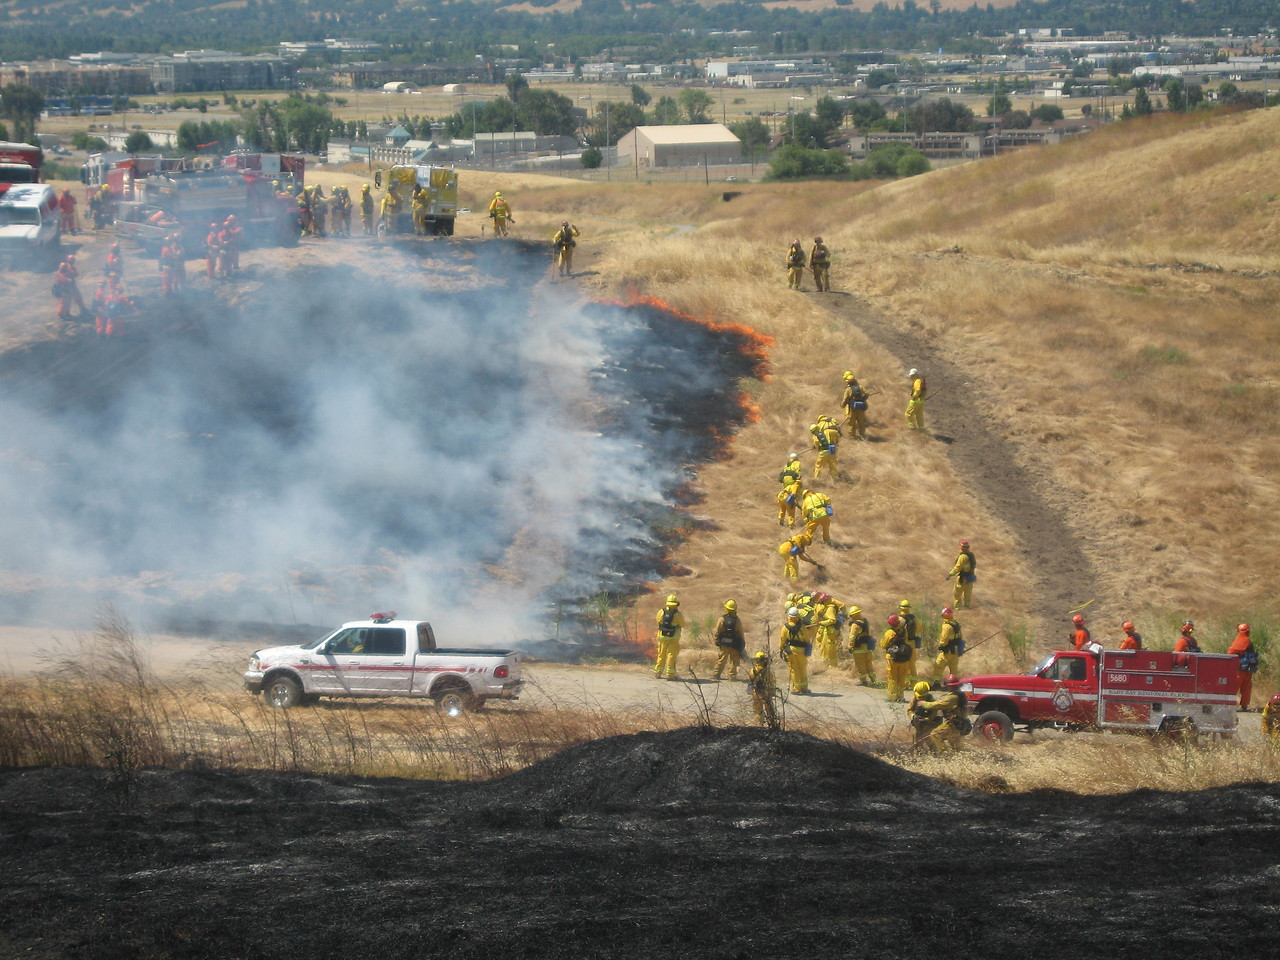 Prescribed fire burn and live fire training